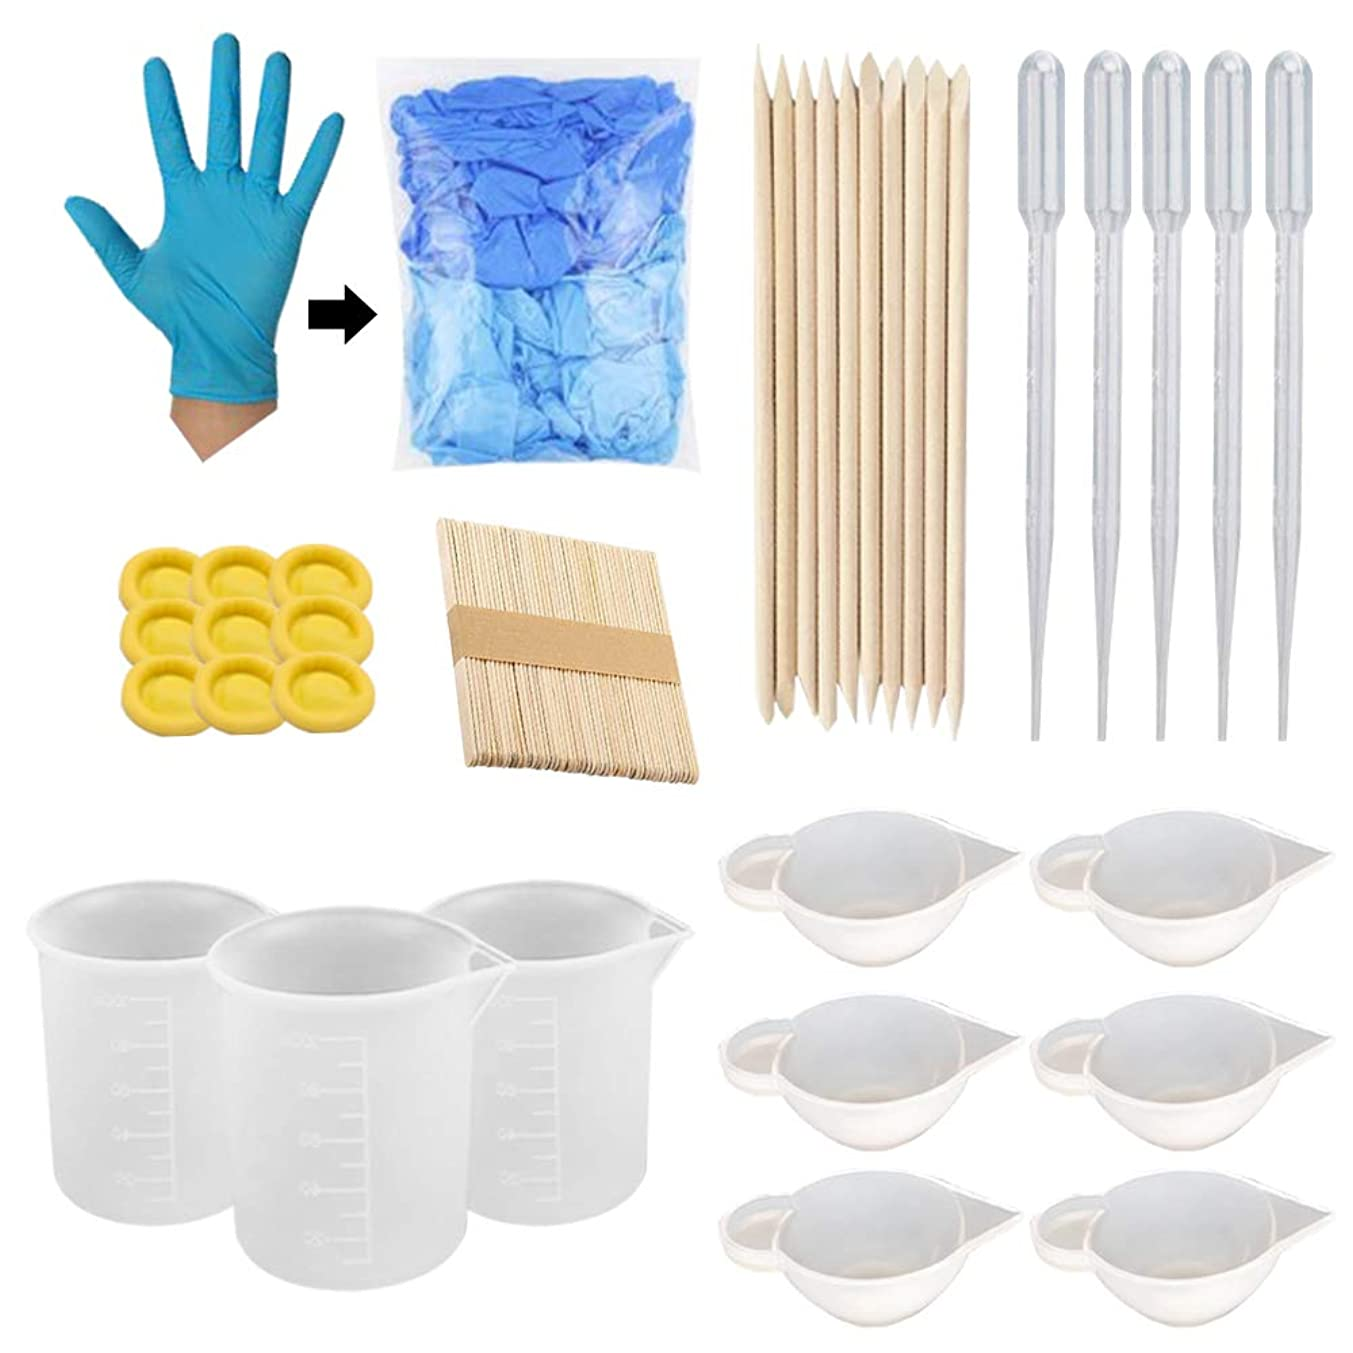 Ohaha Nonstick Silicone Mixing Cups, Nitrile Gloves,Finger cots Gloves,Sticks,Transfer pipettes Plastic droppers for Epoxy Resin, Casting Molds, Slime, Art, Waxing, Kitchen